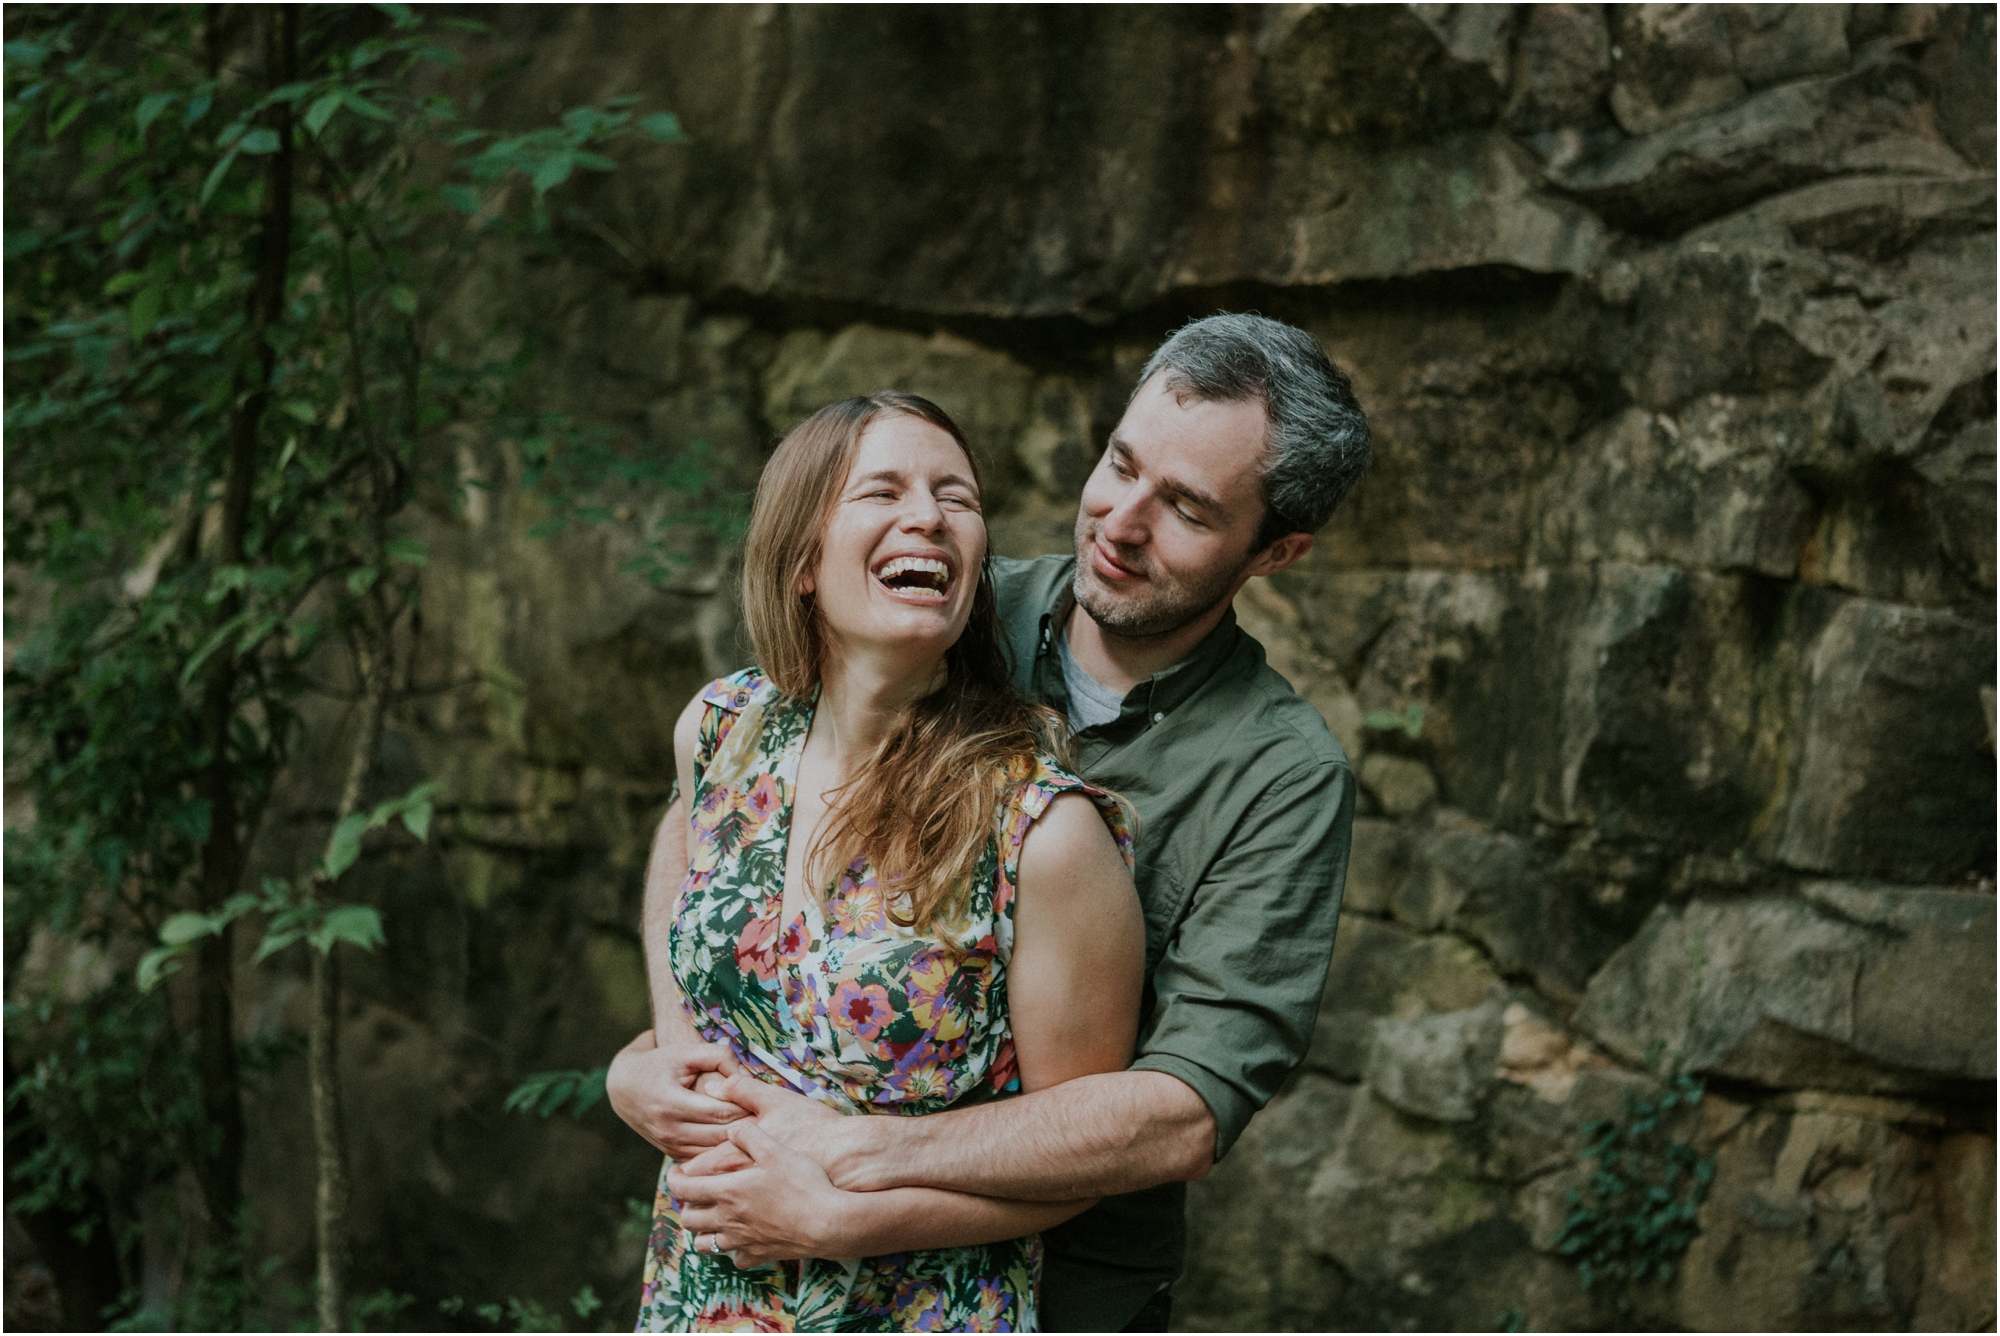 meads-quarry-ijams-nature-center-knoxville-tennessee-engagement-session-summer-northeast-tn-adventurous-outdoors-lake-katy-sergent_0019.jpg